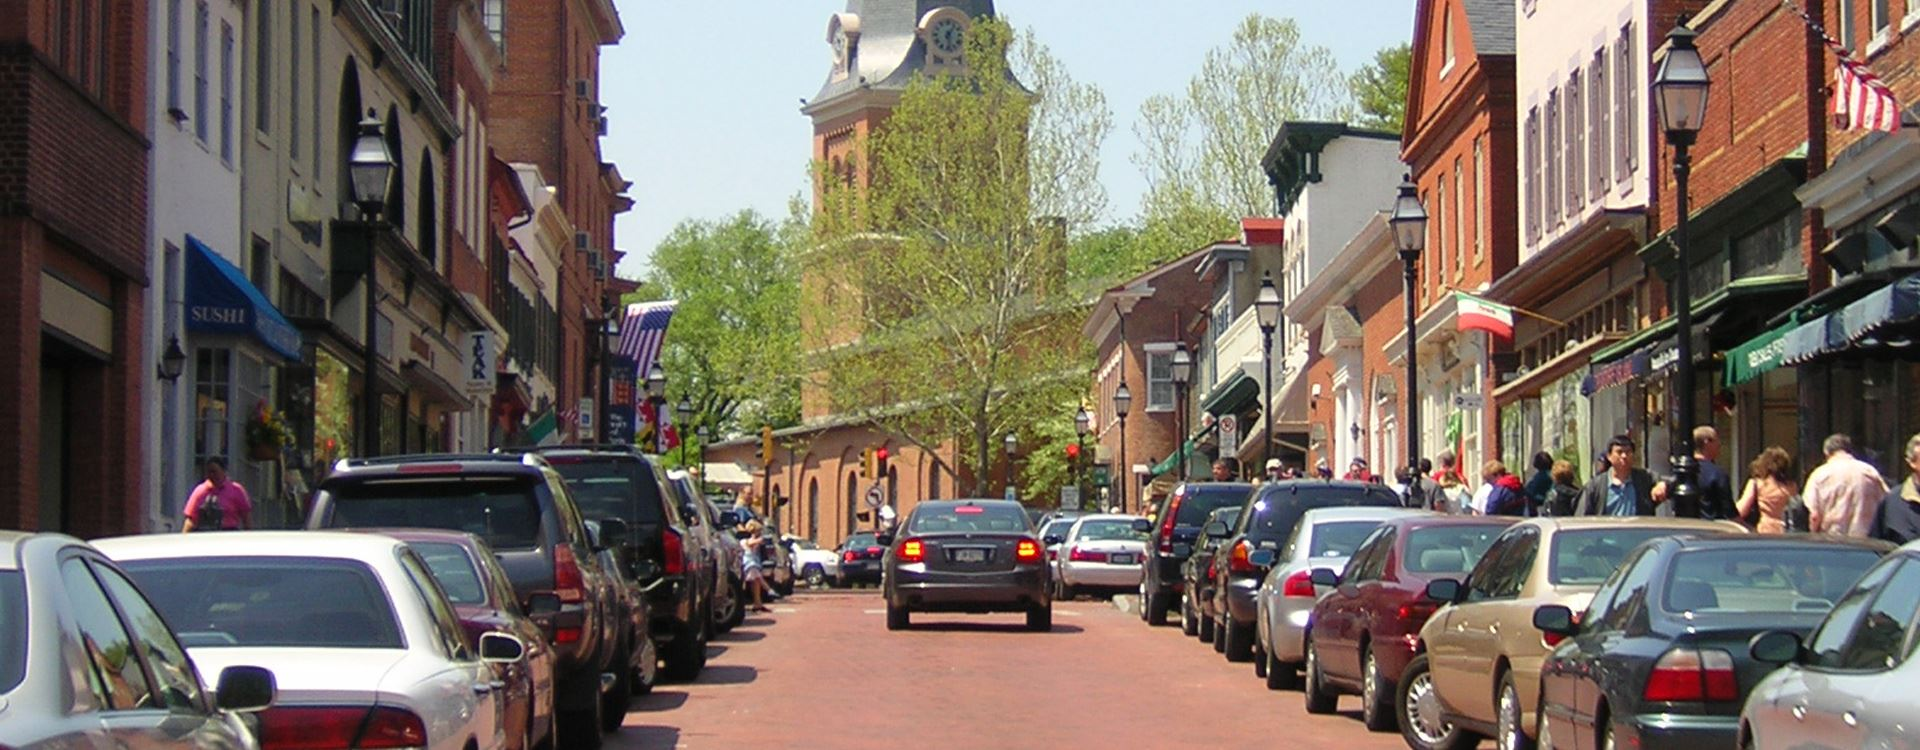 city-of-annapolis-street